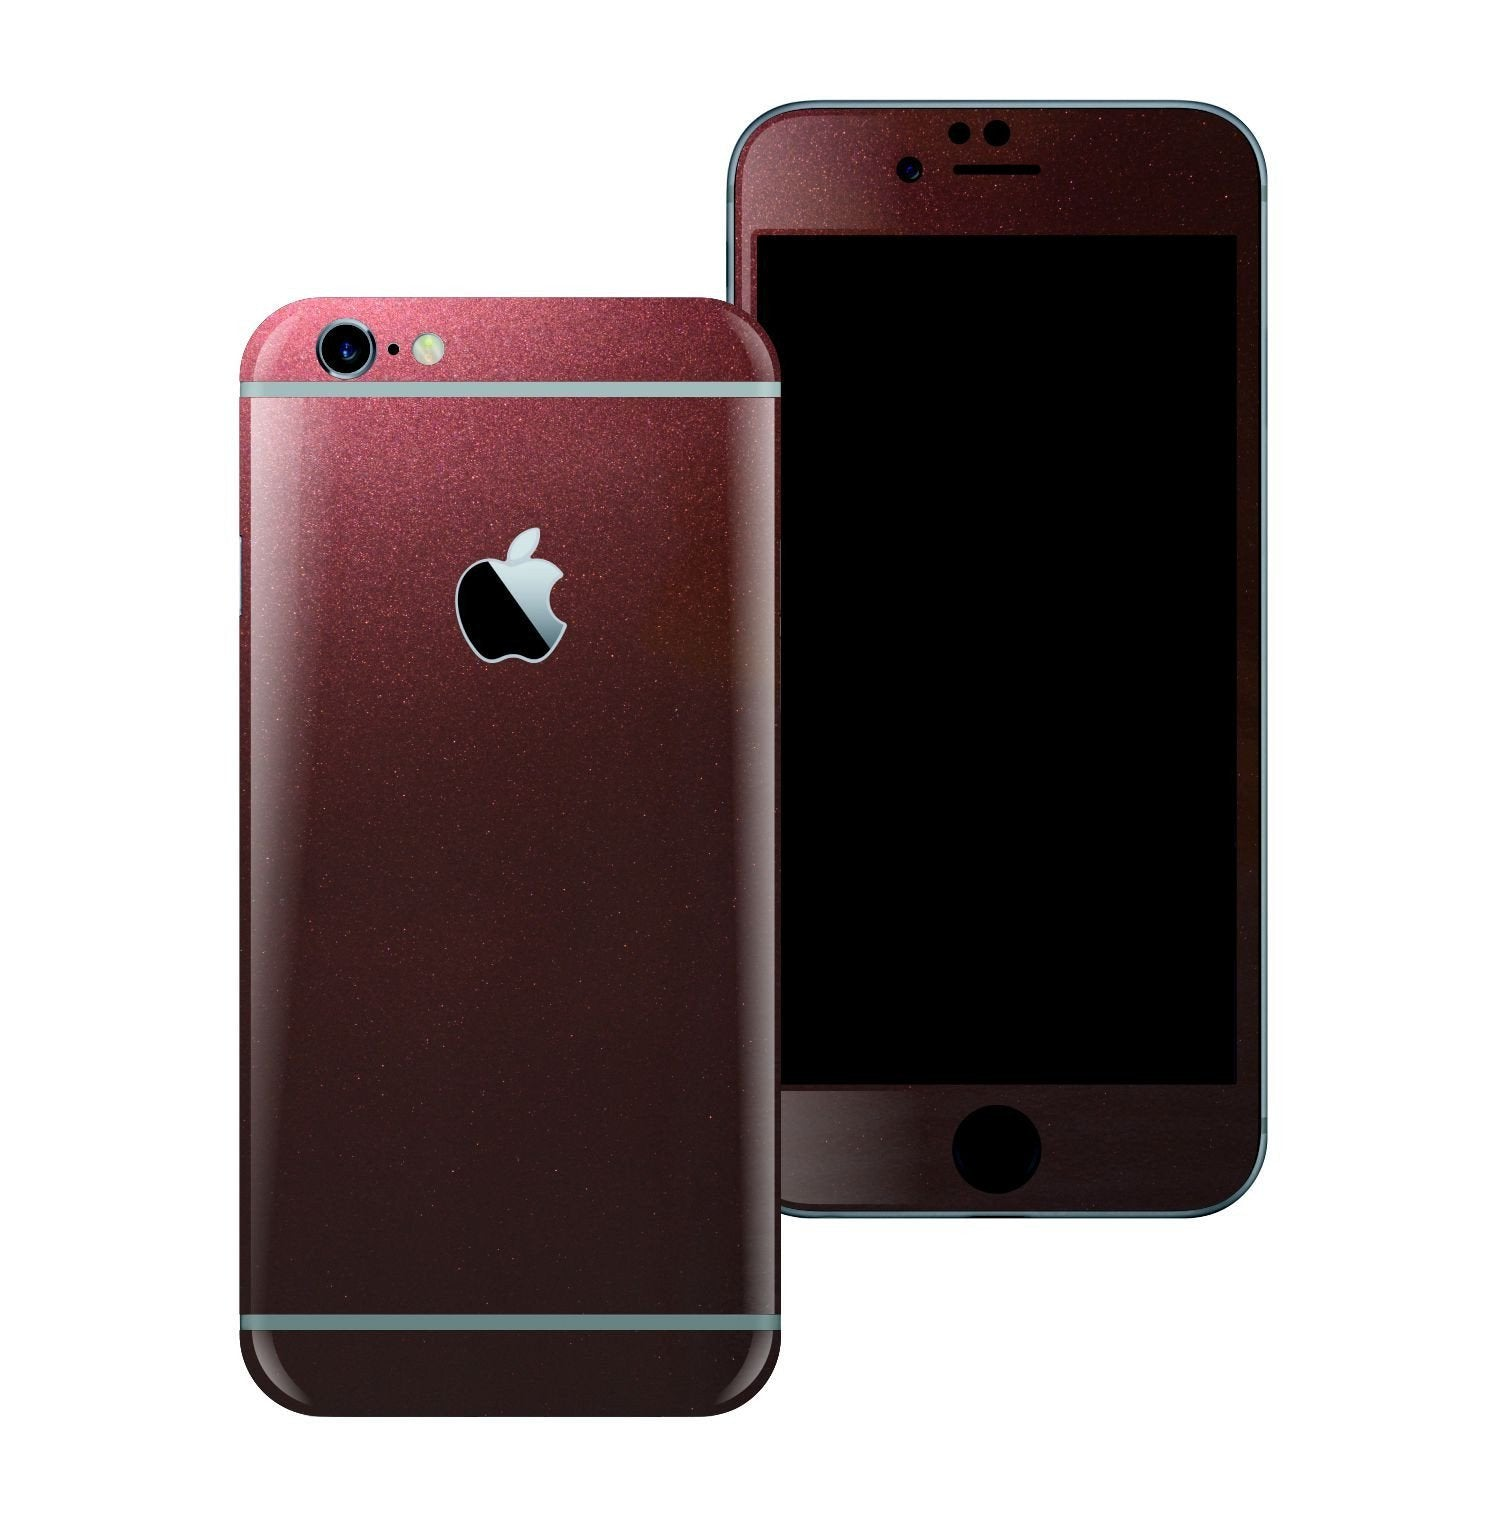 iPhone 6 Plus 3M Gloss Black Rose Metallic Skin Wrap Sticker Cover Protector Decal by EasySkinz